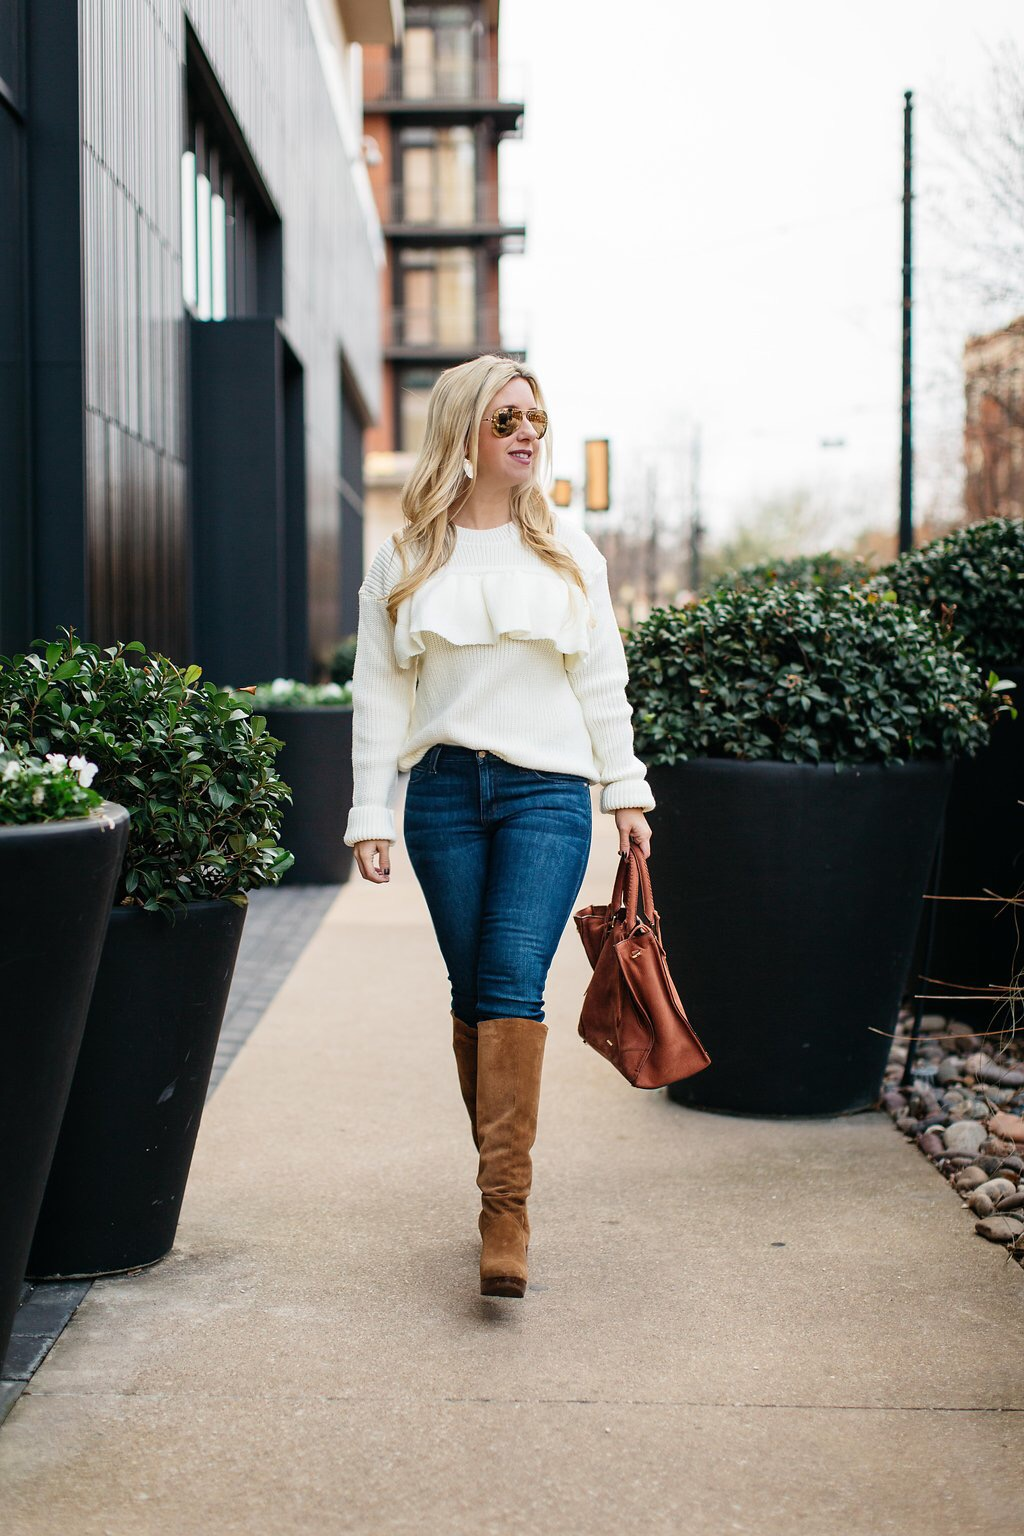 Chunky knit sweater | Dallas Fashion | Nicole Kirk